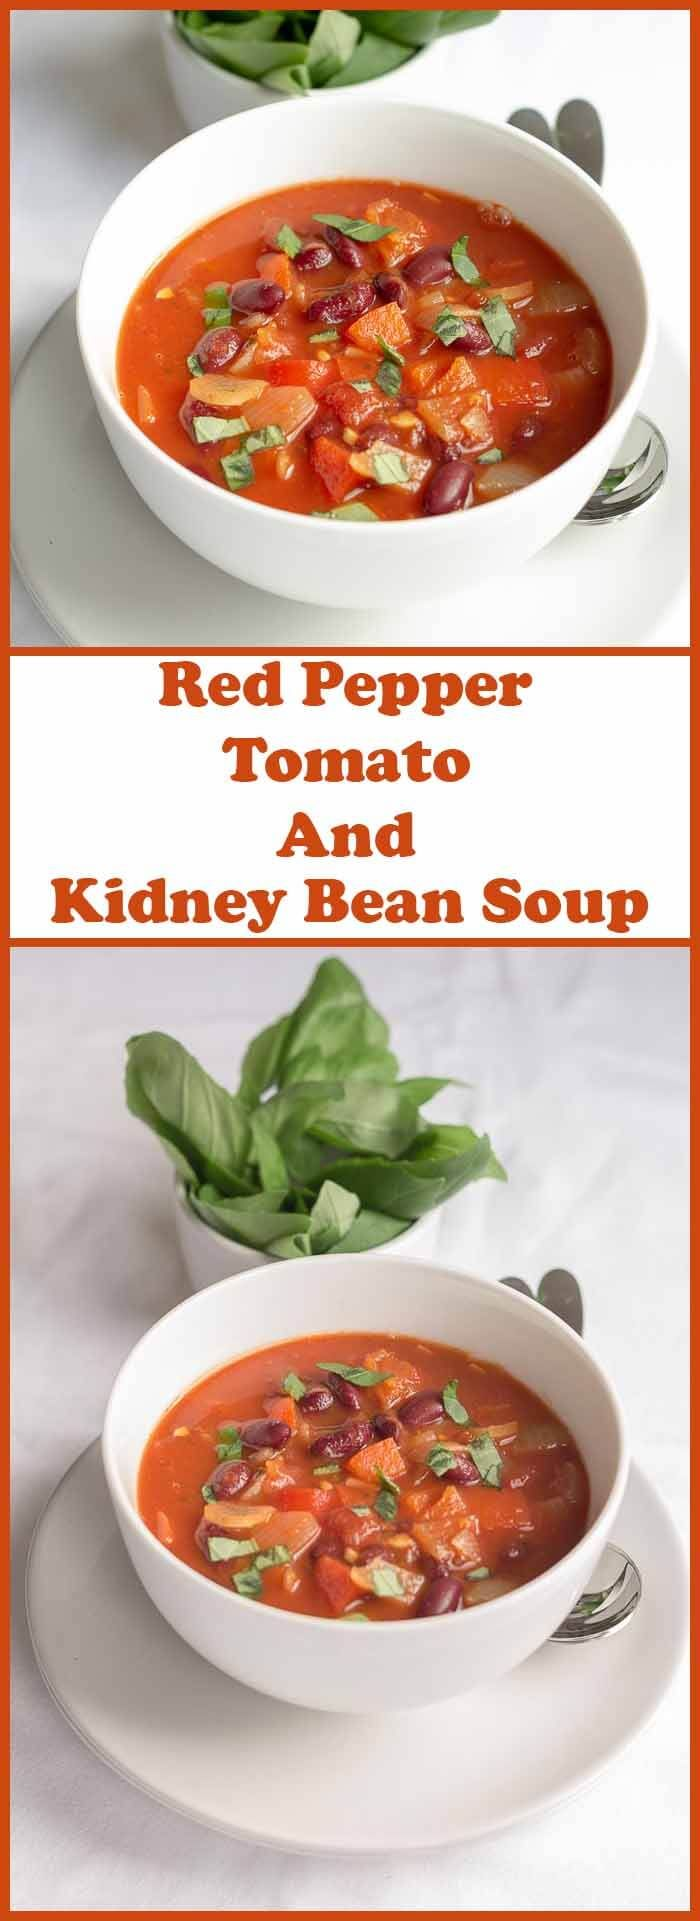 Red Pepper Tomato And Kidney Bean Soup